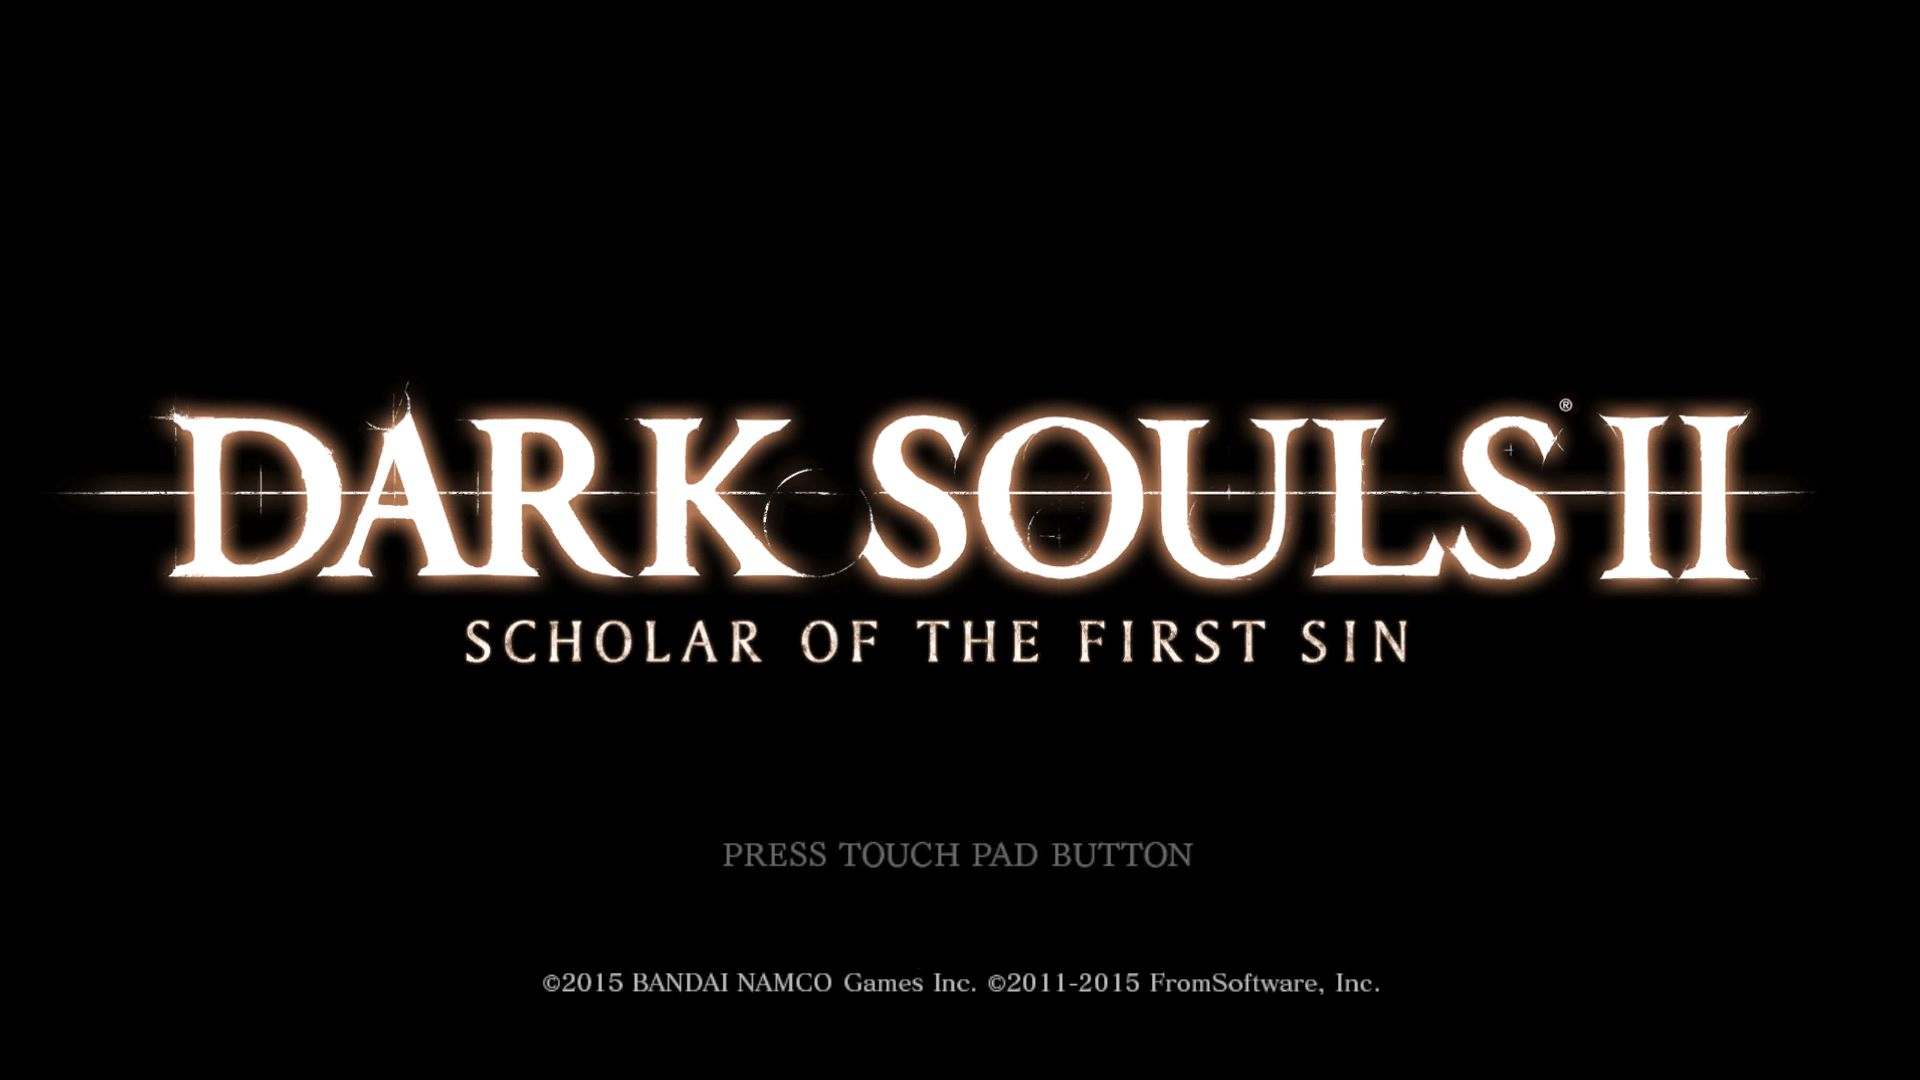 DARK SOULS Ⅱ SCHOLAR OF THE FIRST SIN Vol.15